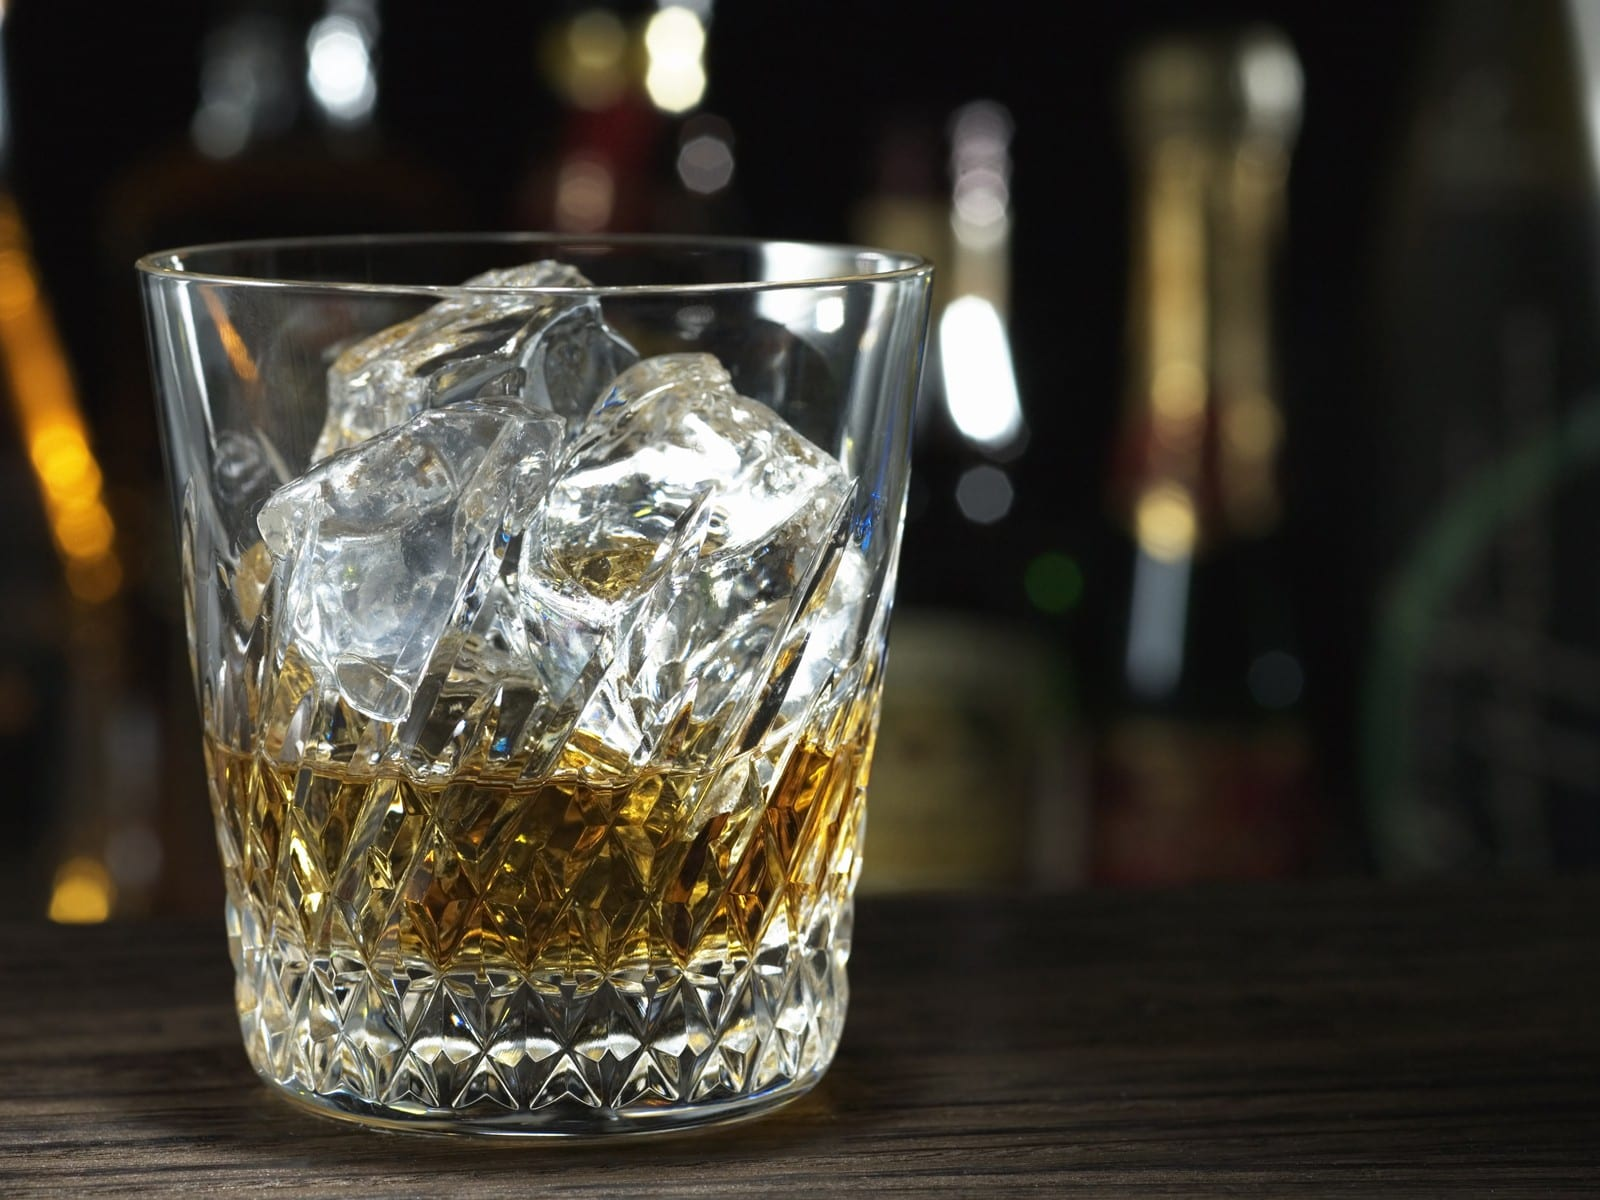 JW056_350A_Whiskey_on_the_Rocks_Whiskey_and_ice